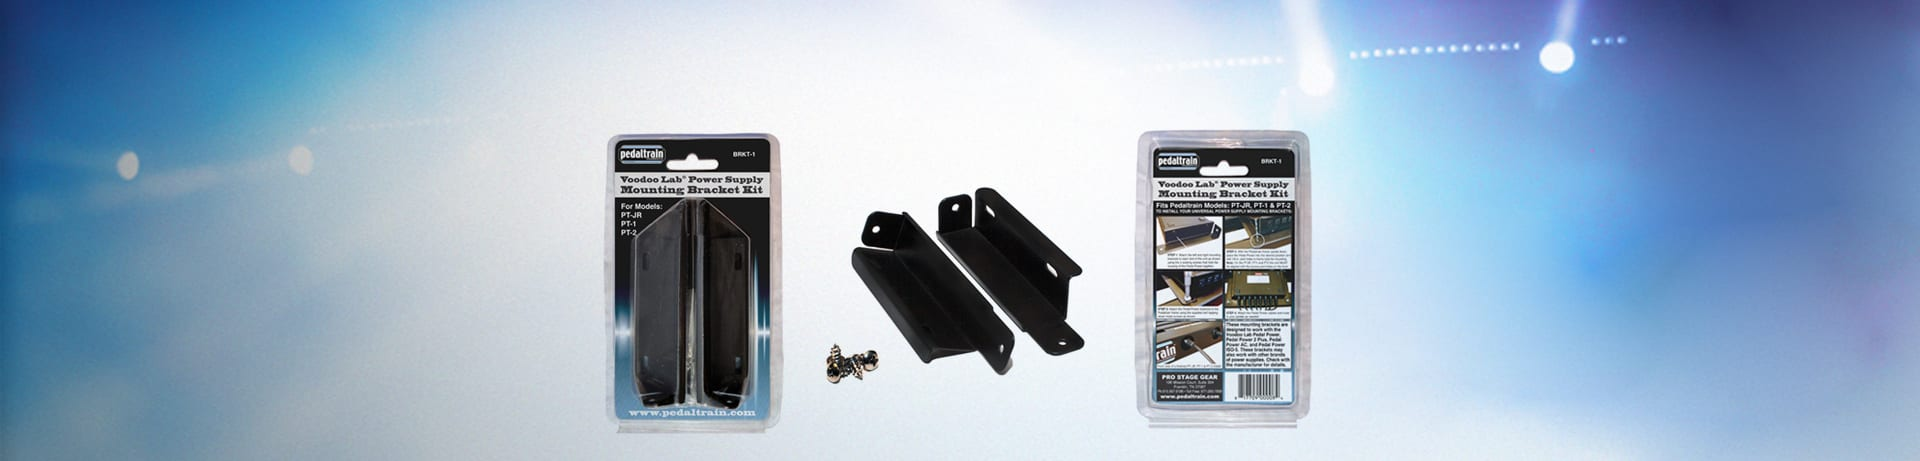 PedalTrain Power Supply Mounting Brackets BRKT – 1